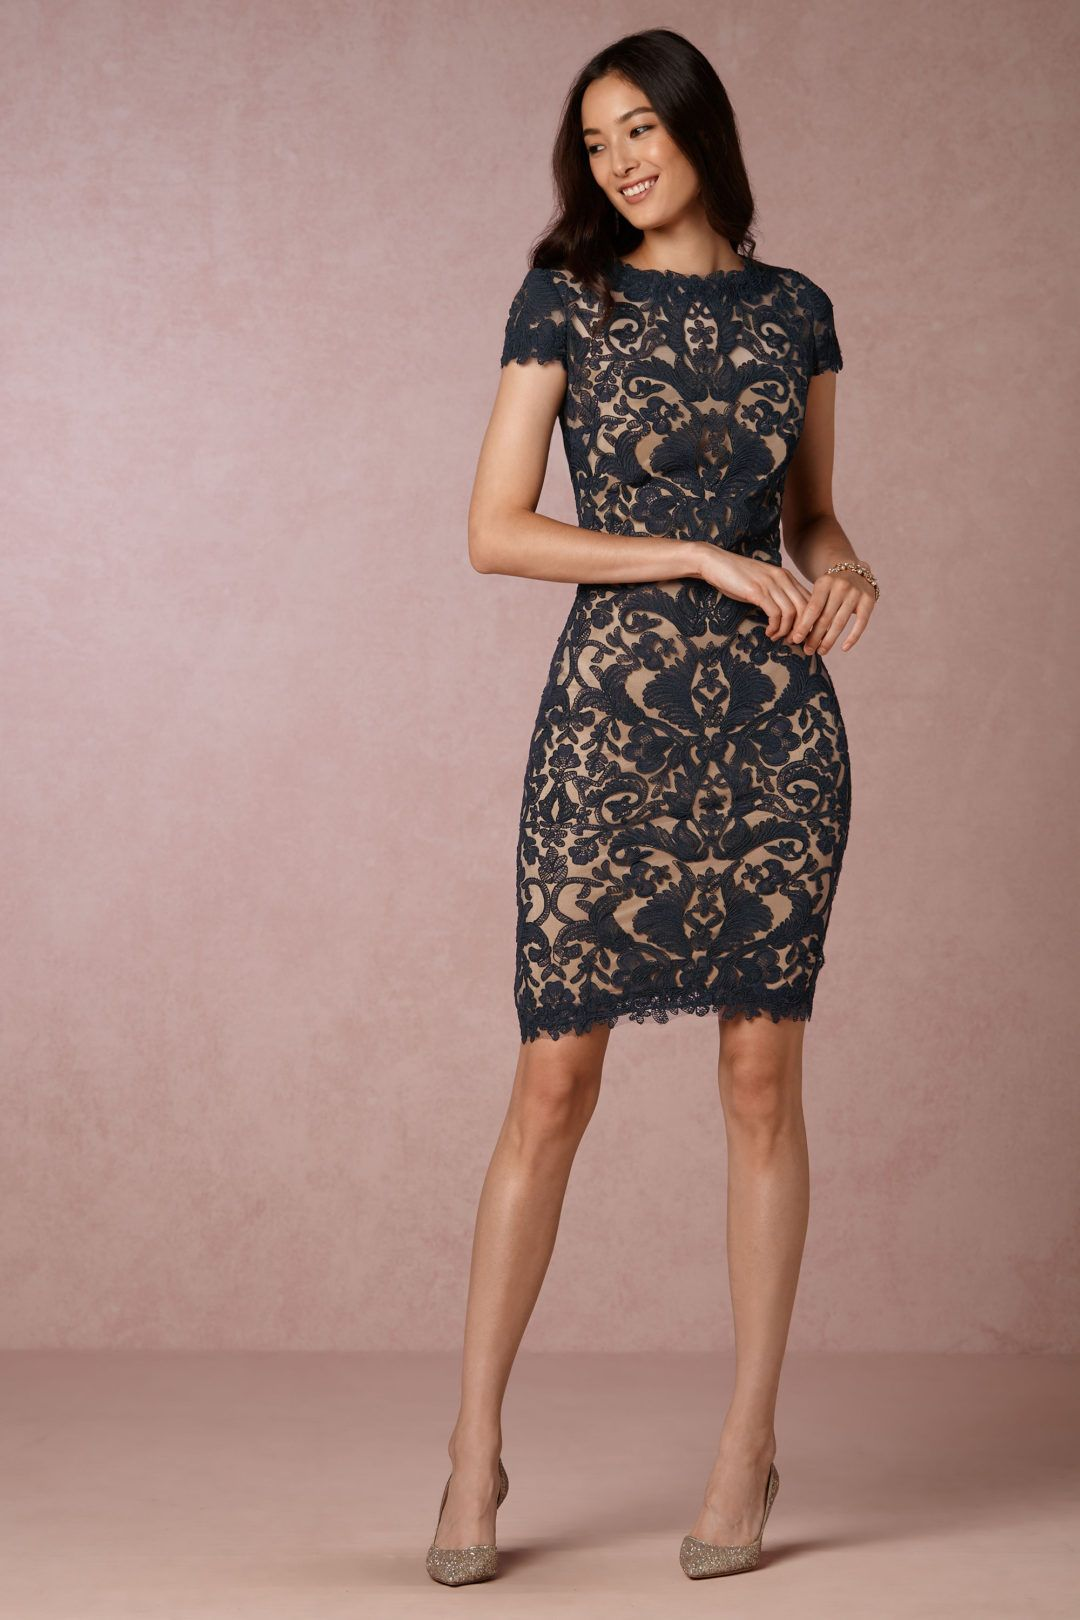 65393071d71 Lace sheath dress in navy blue cocktail dress 2016 wedding guest attire for  autumn